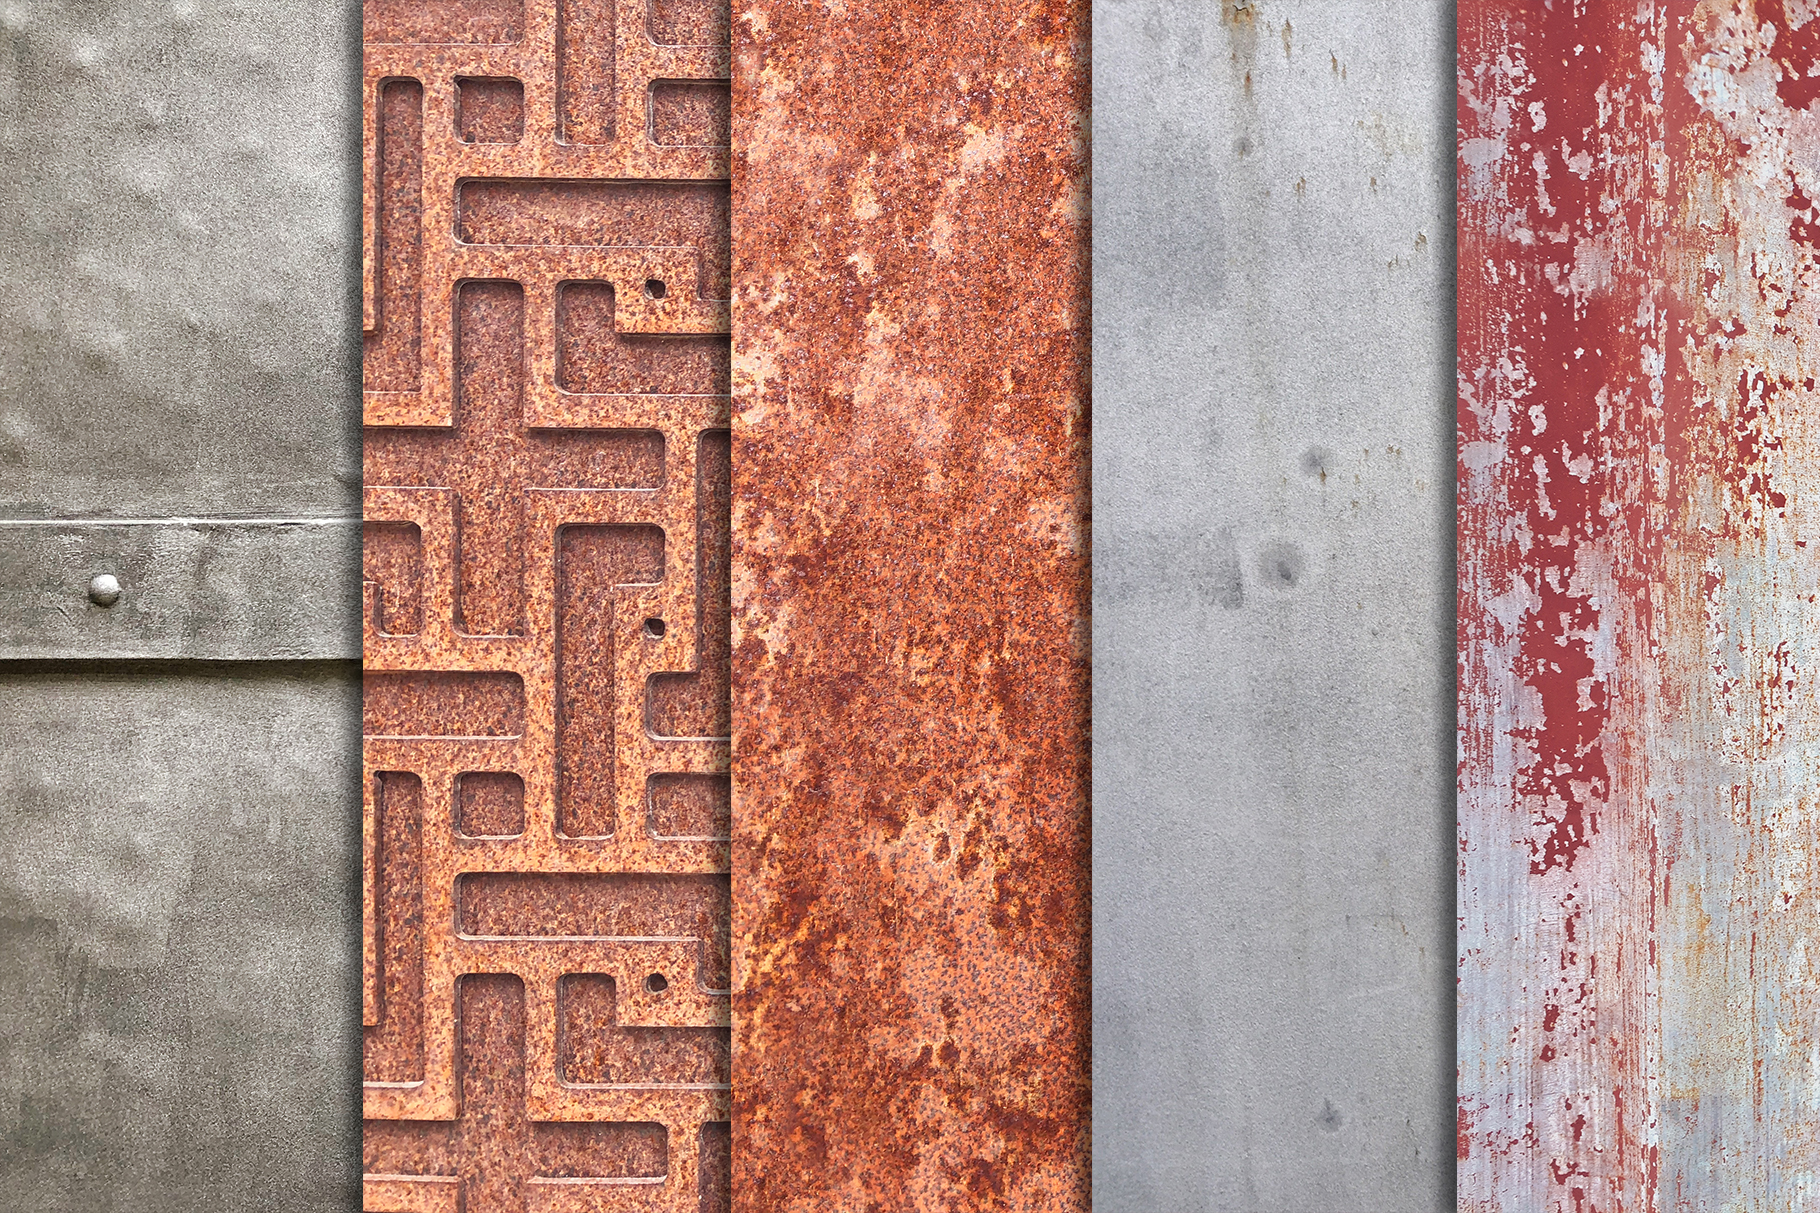 Old Iron Textures x10 vol2 example image 3